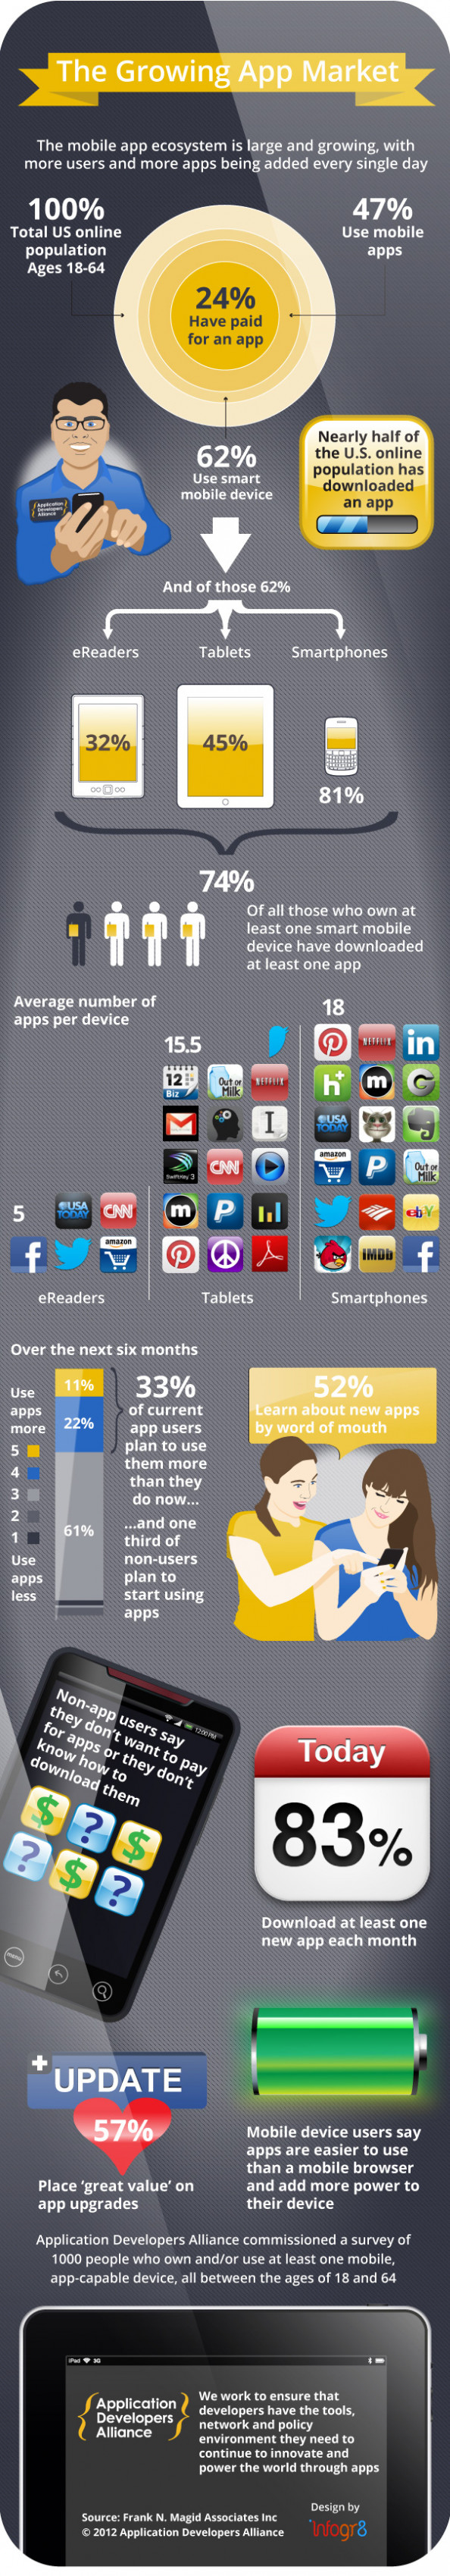 The Growing App Market Infographic